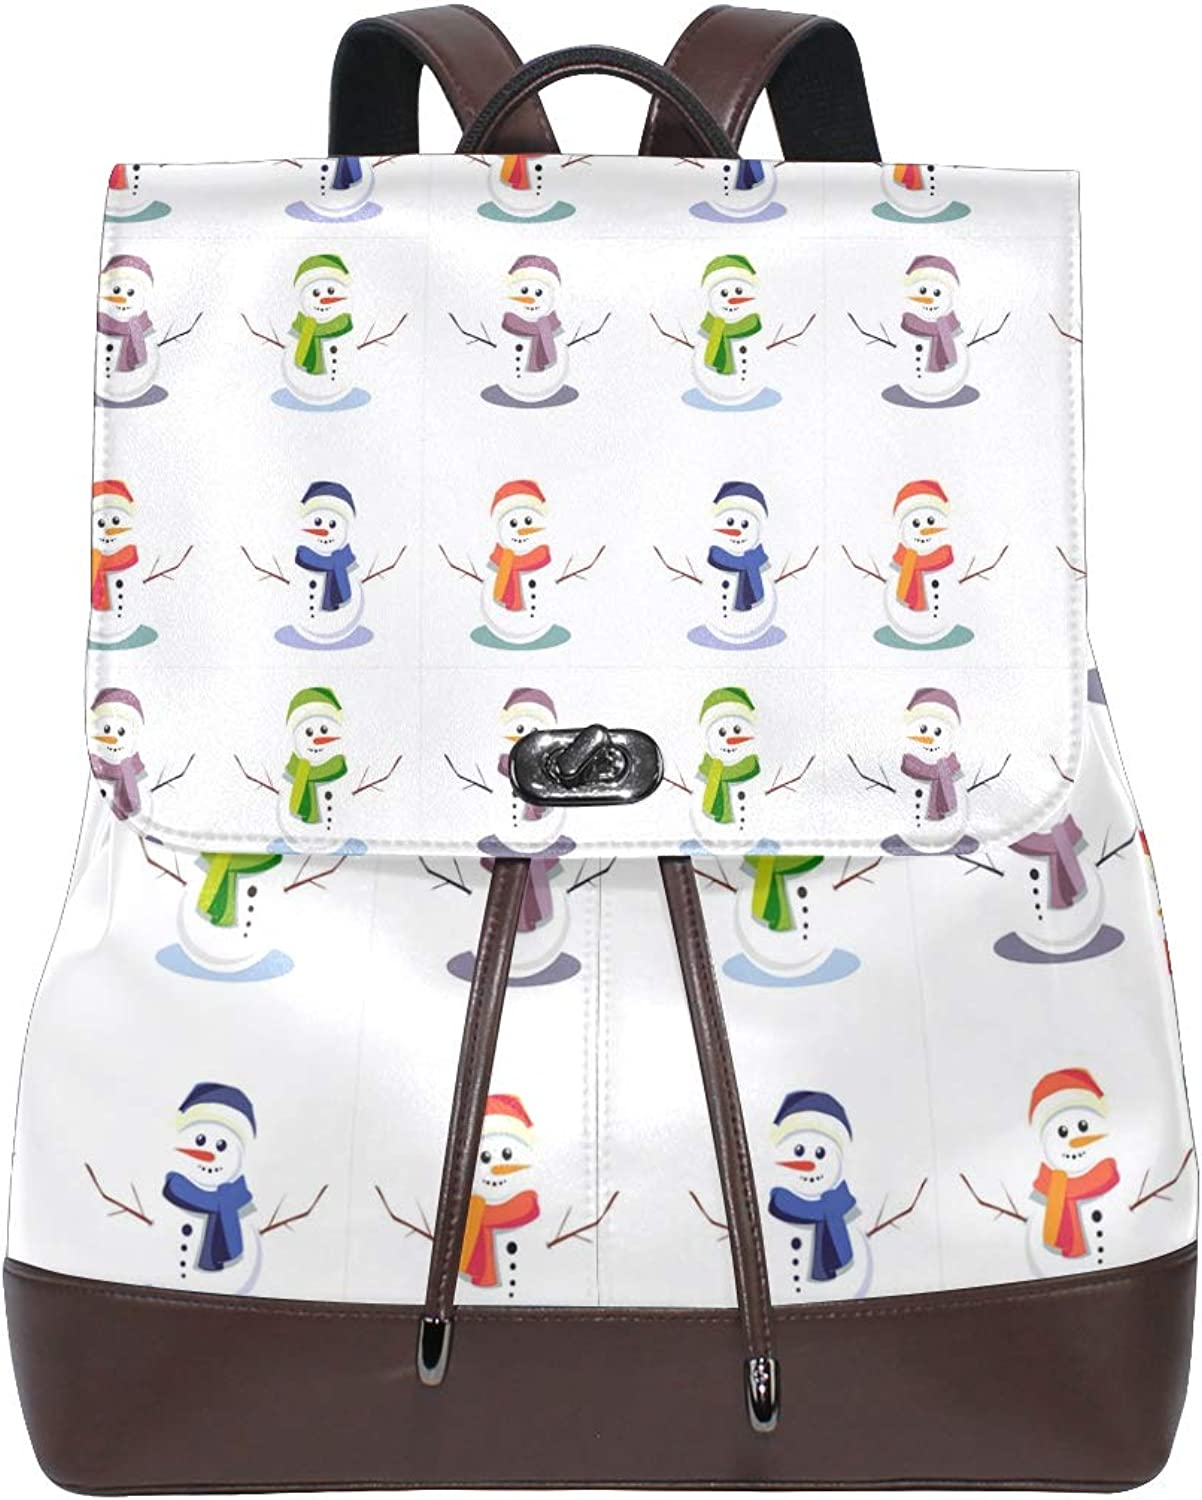 Leather Chrismas Cute Snowmens Backpack Daypack Bag Women